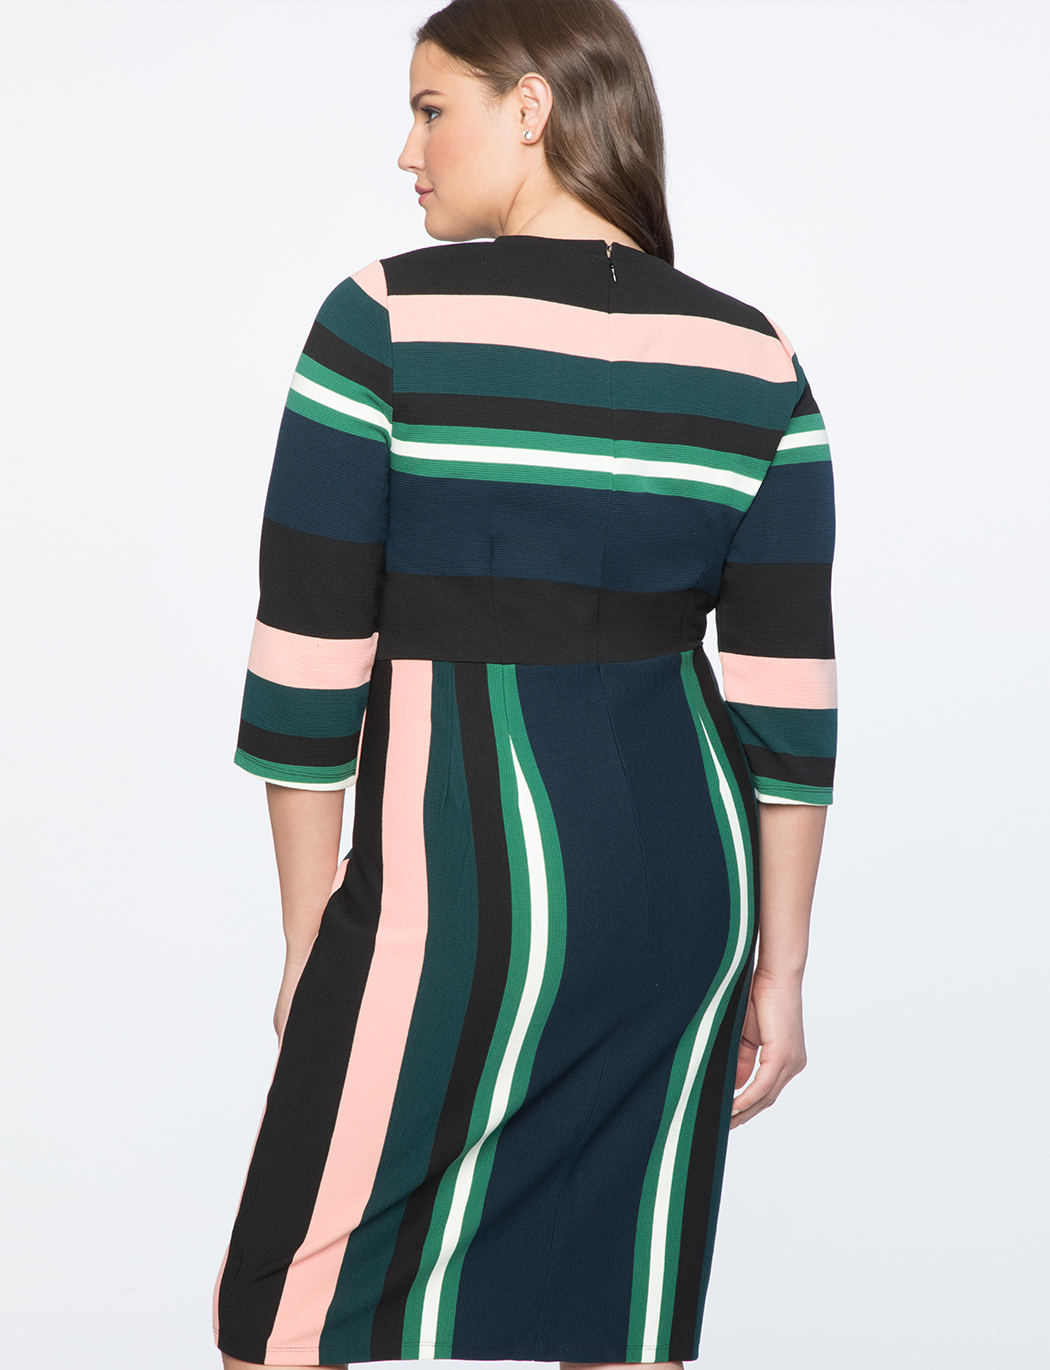 Opposing Stripe Sheath Dress